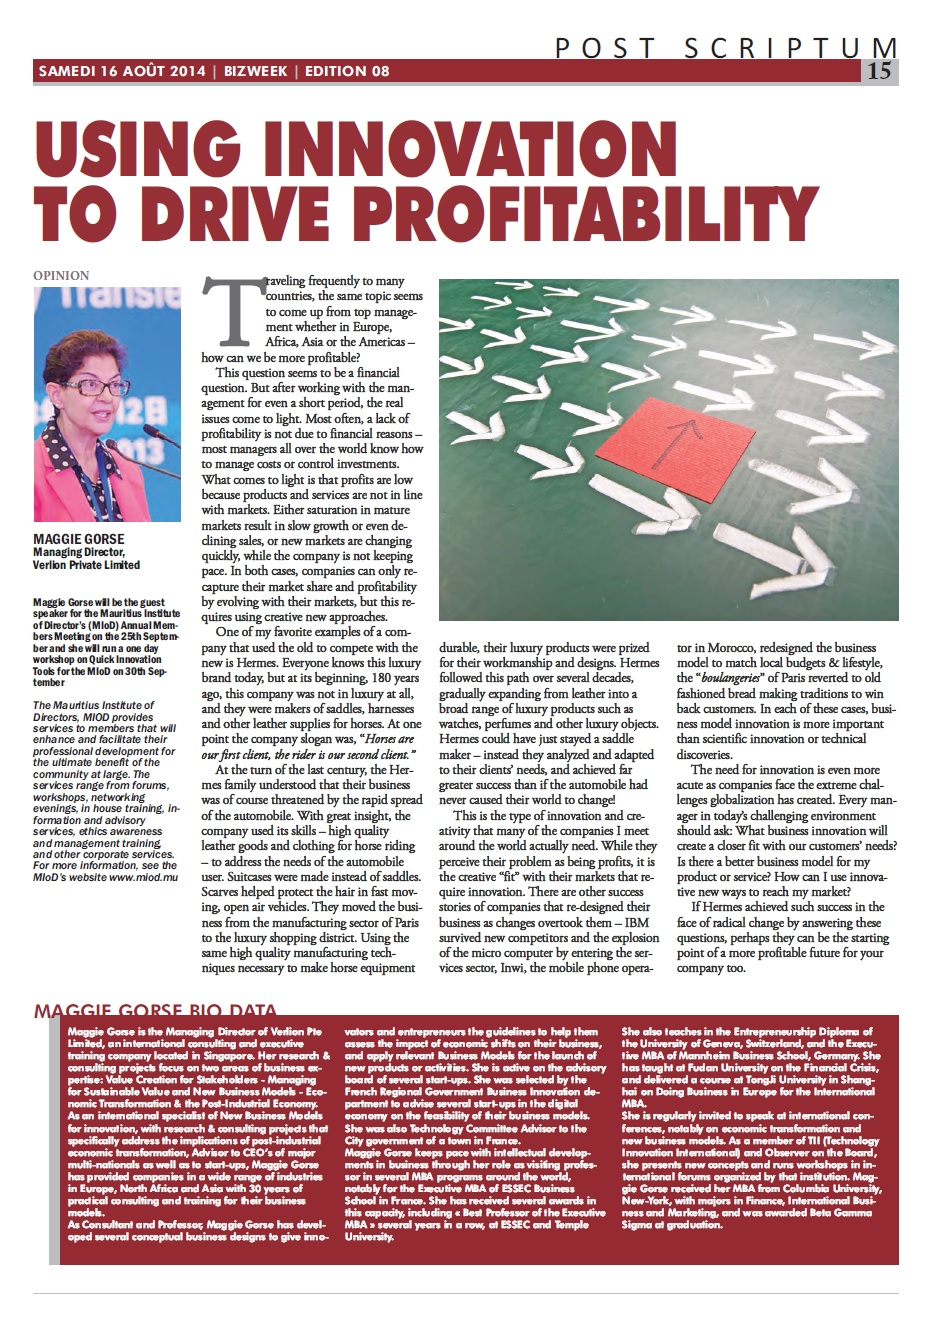 Quick Innovation for Profitability